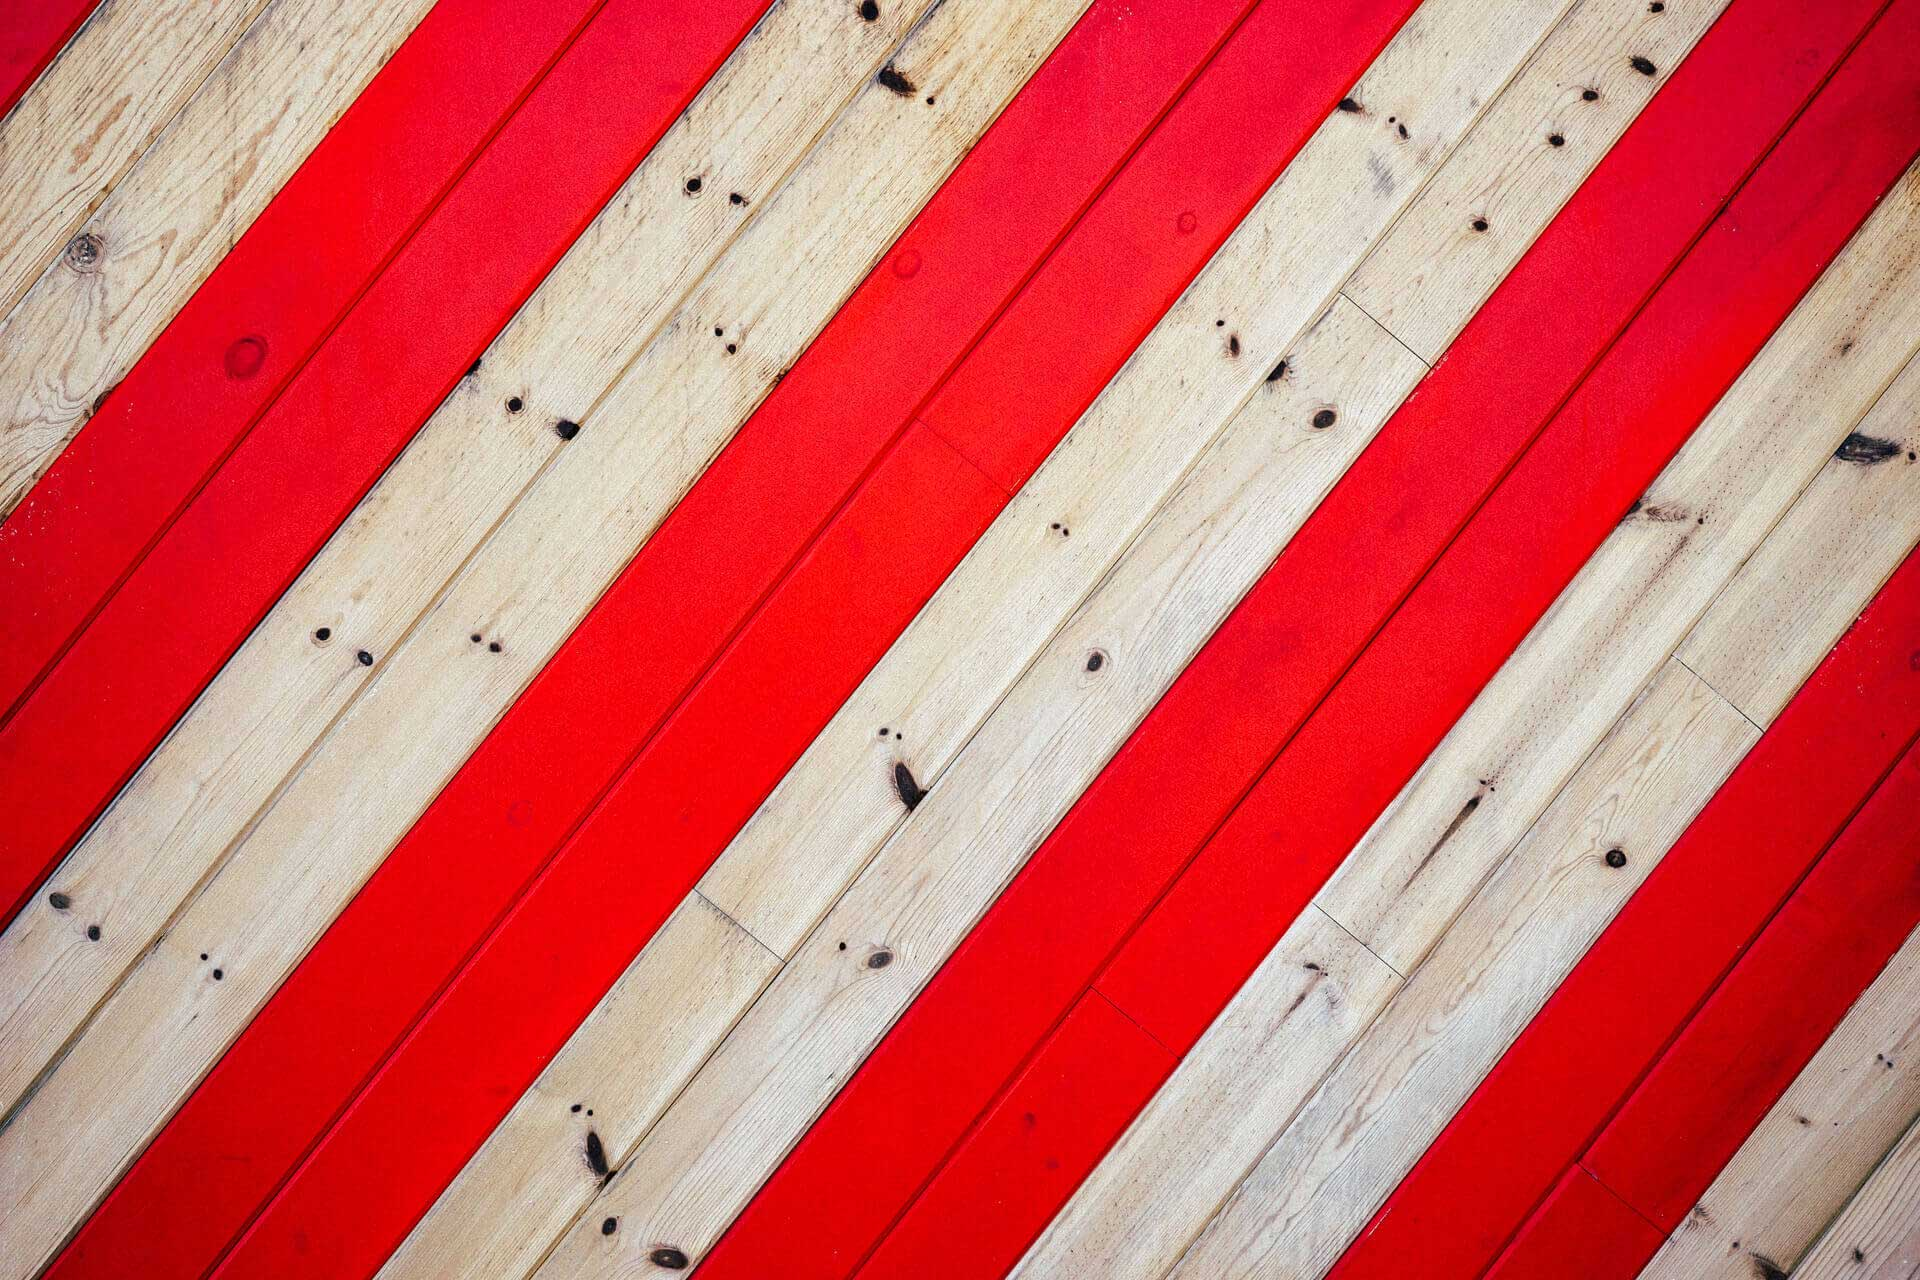 red-pattern-texture-lines